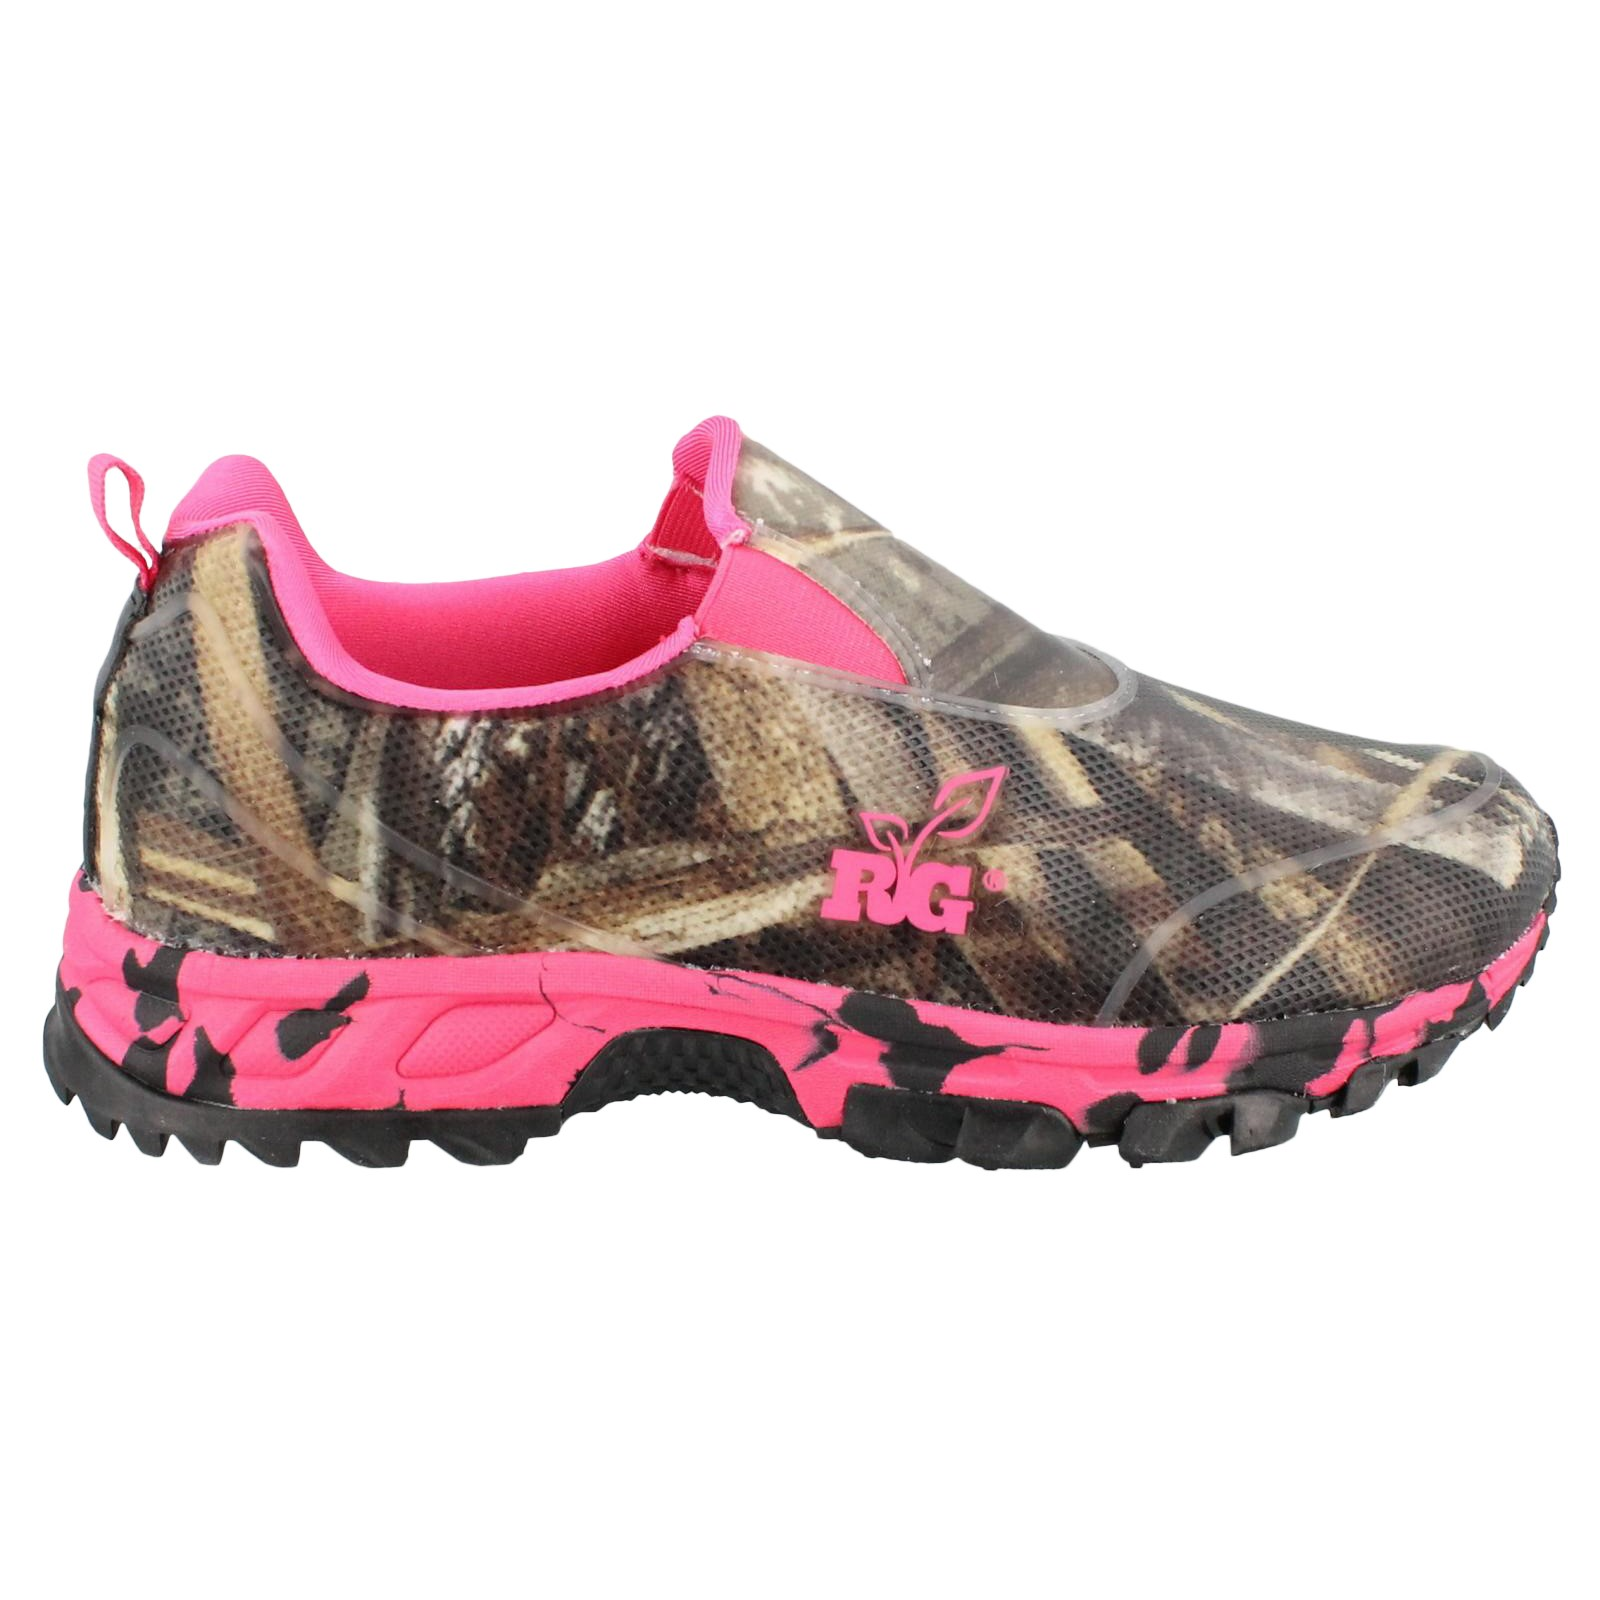 Women's Realtree Outfitters, Ms Viper Slip on Shoe